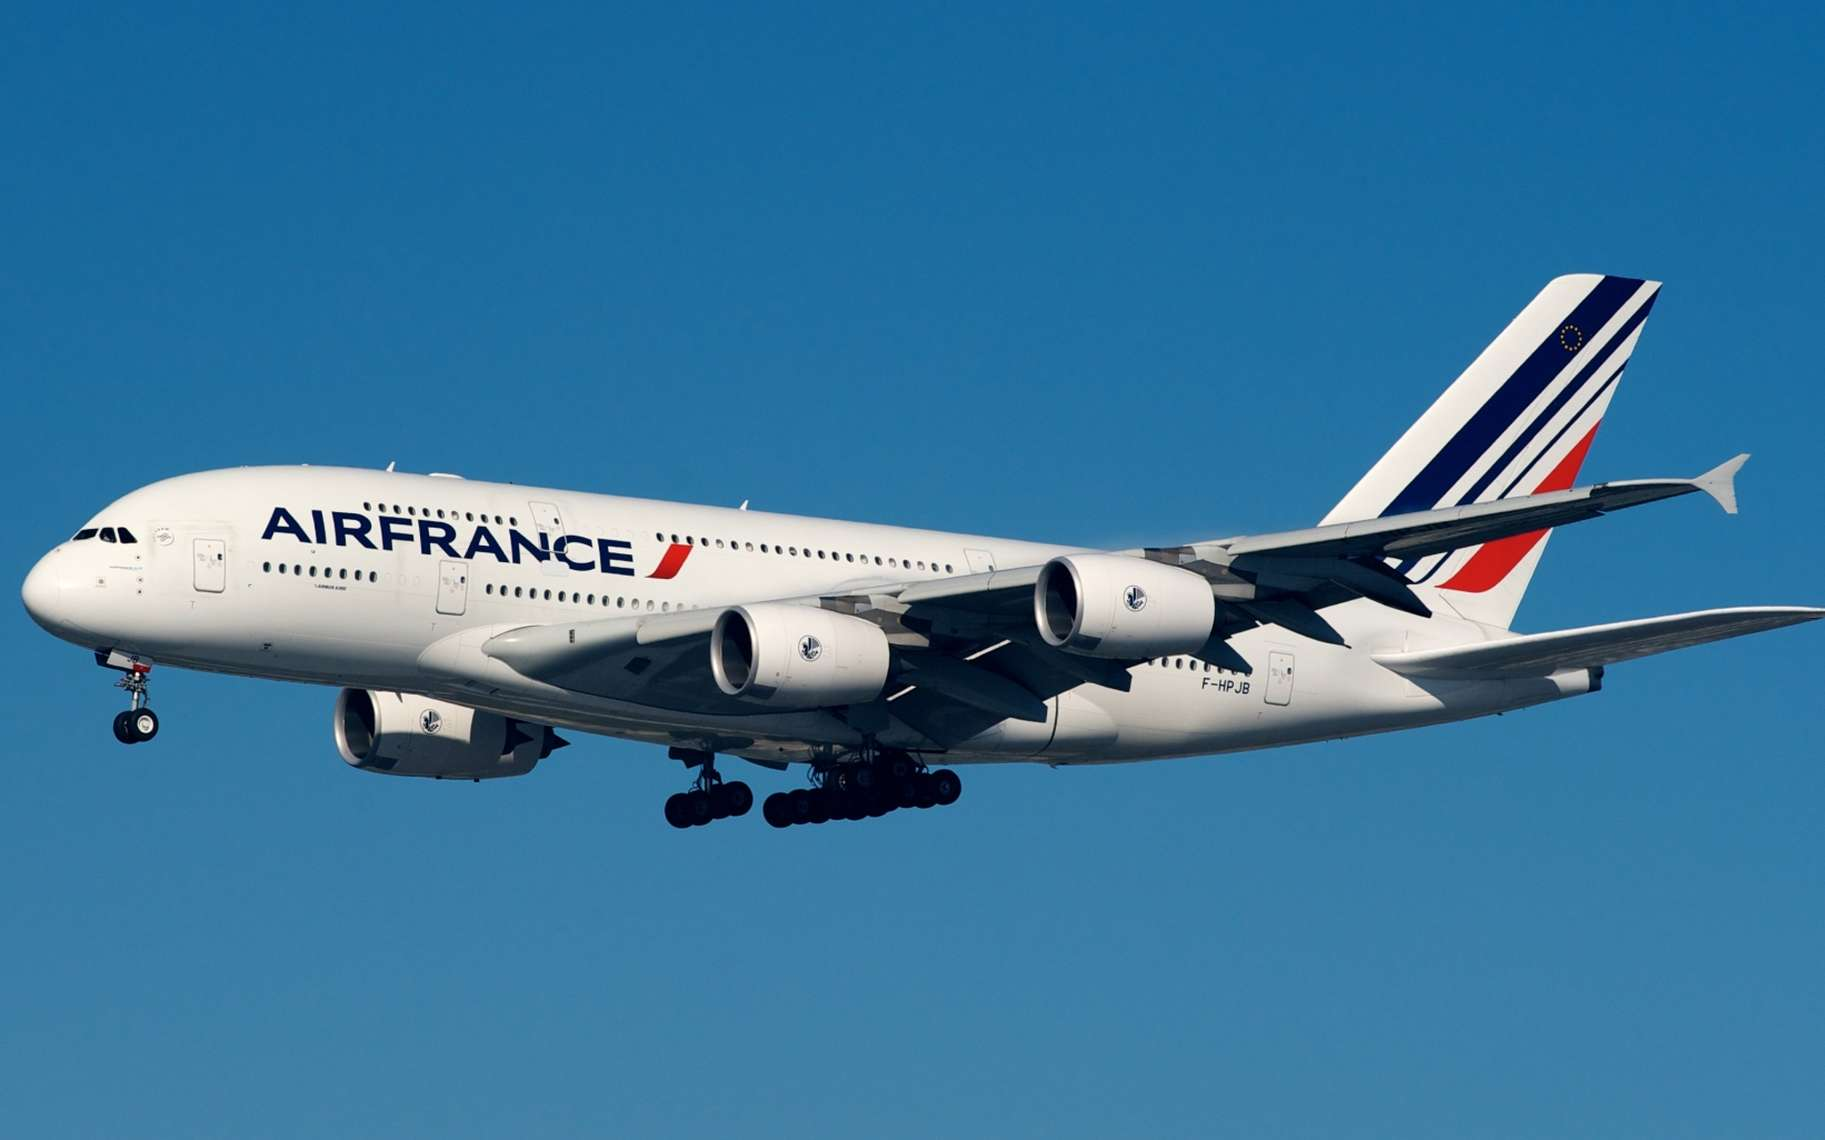 Un Airbus A380 d'Air France. © BriYYZ, Flickr, Licence Creative Commons (by-nc-sa 2.0)